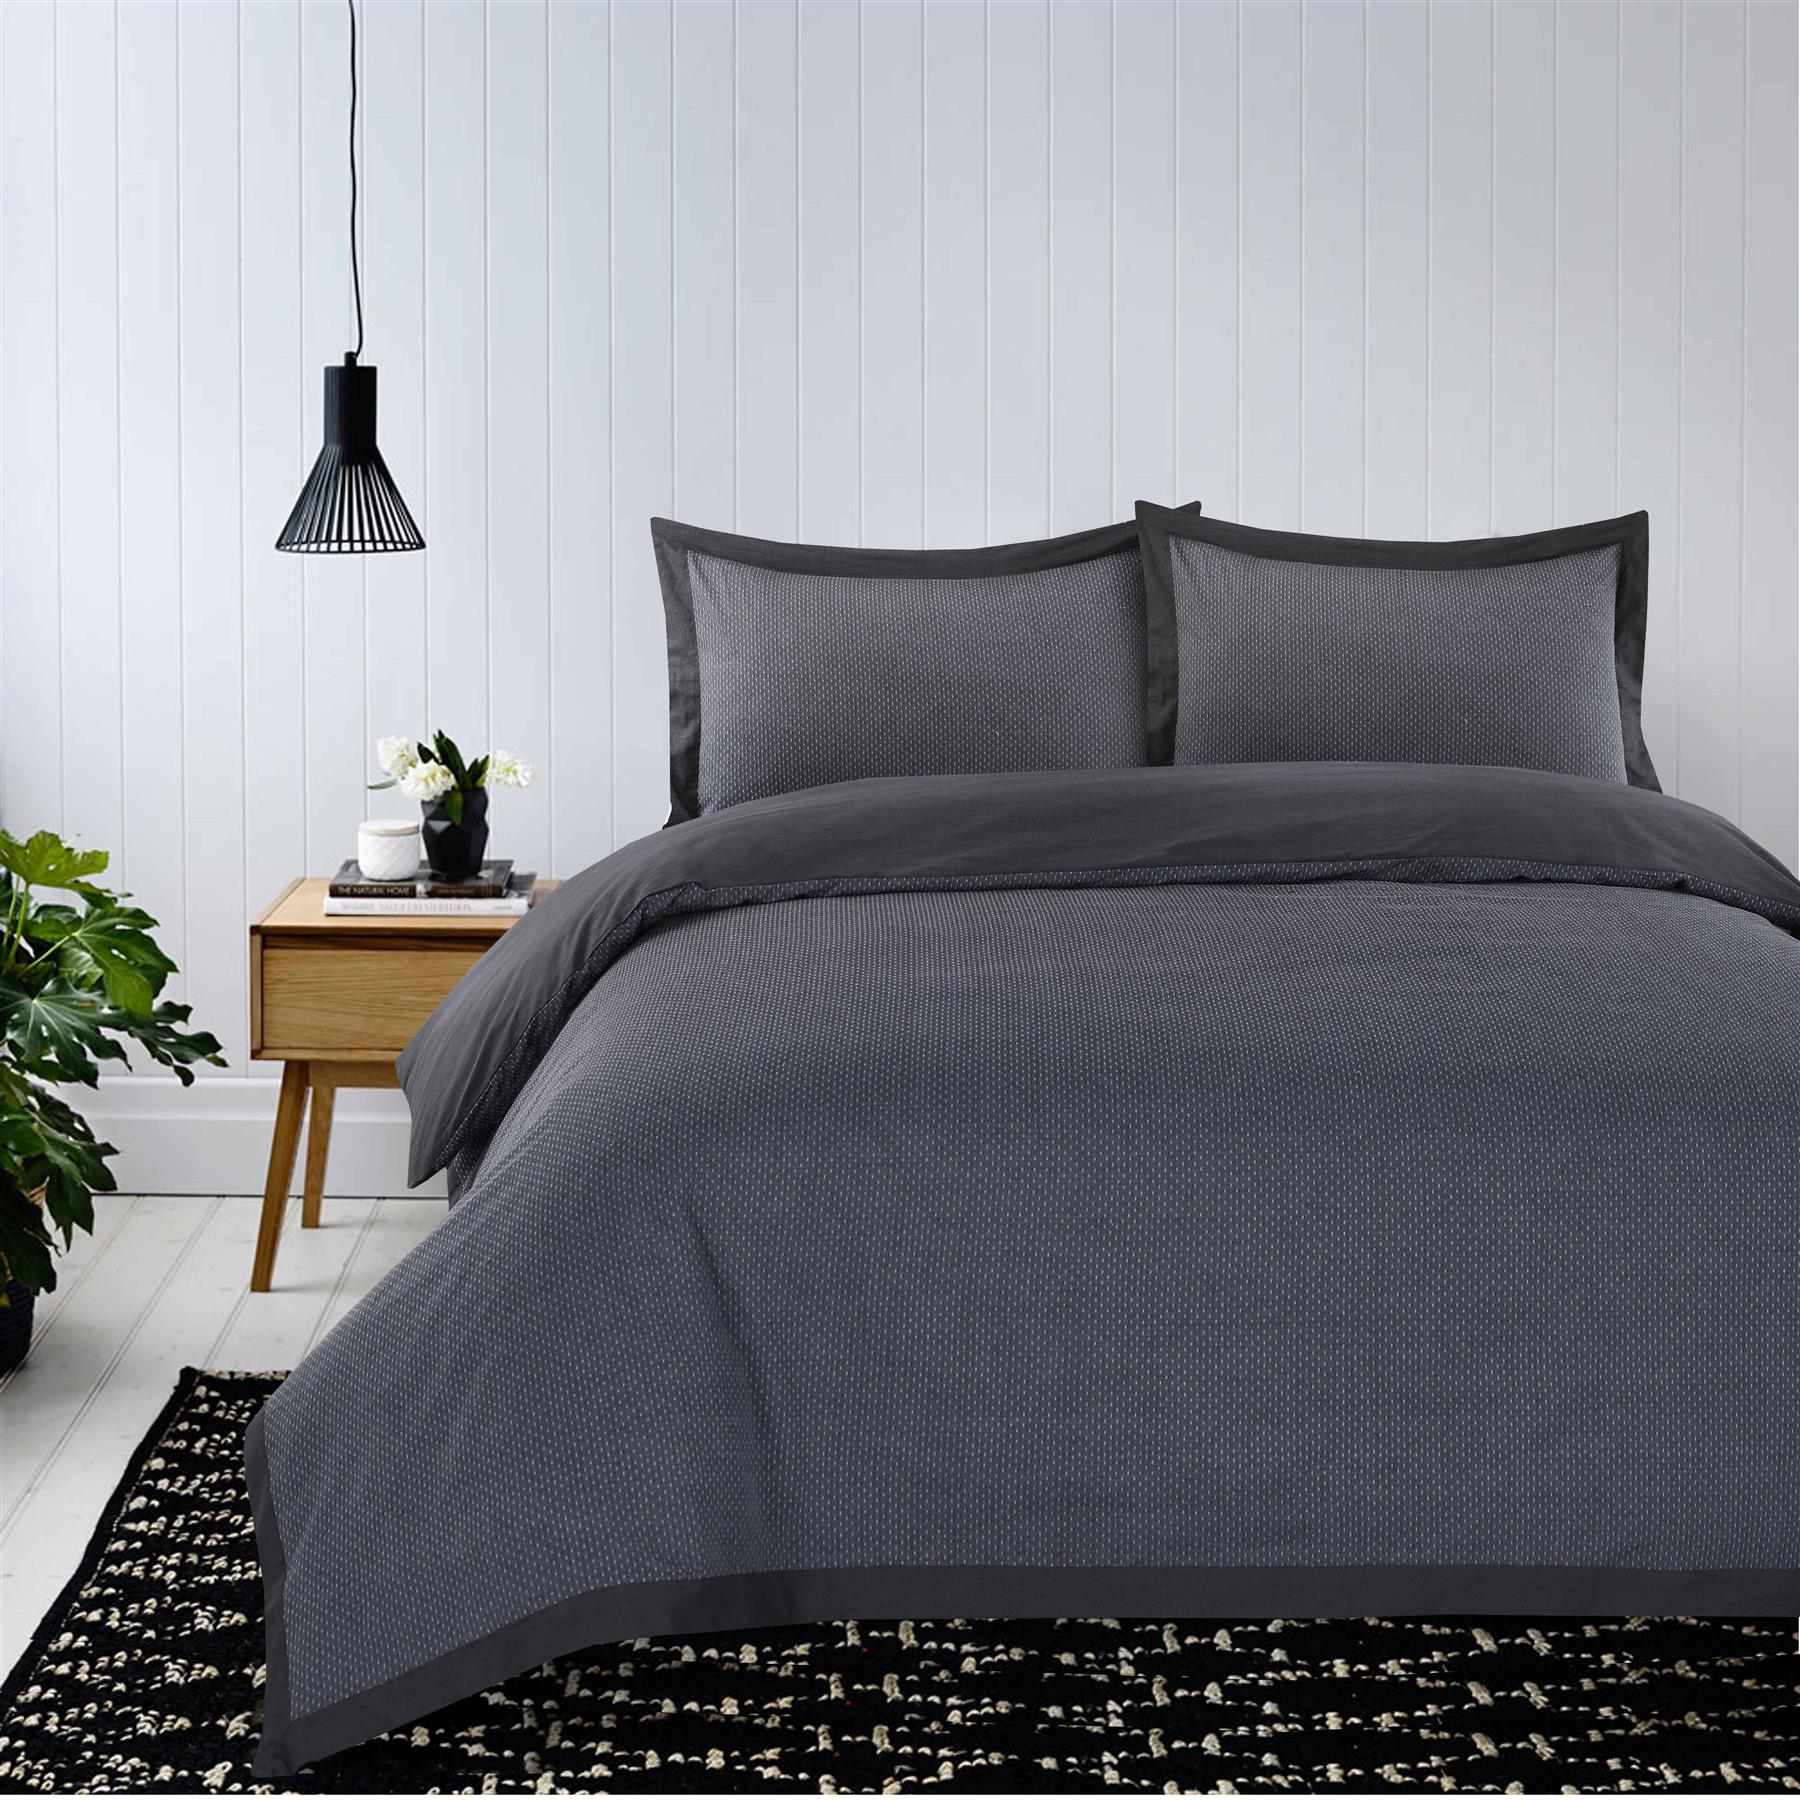 Luxury-Dobby-Dots-Dotted-100-Cotton-Duvet-Cover-Bedding-Set-Single-Double-King thumbnail 5